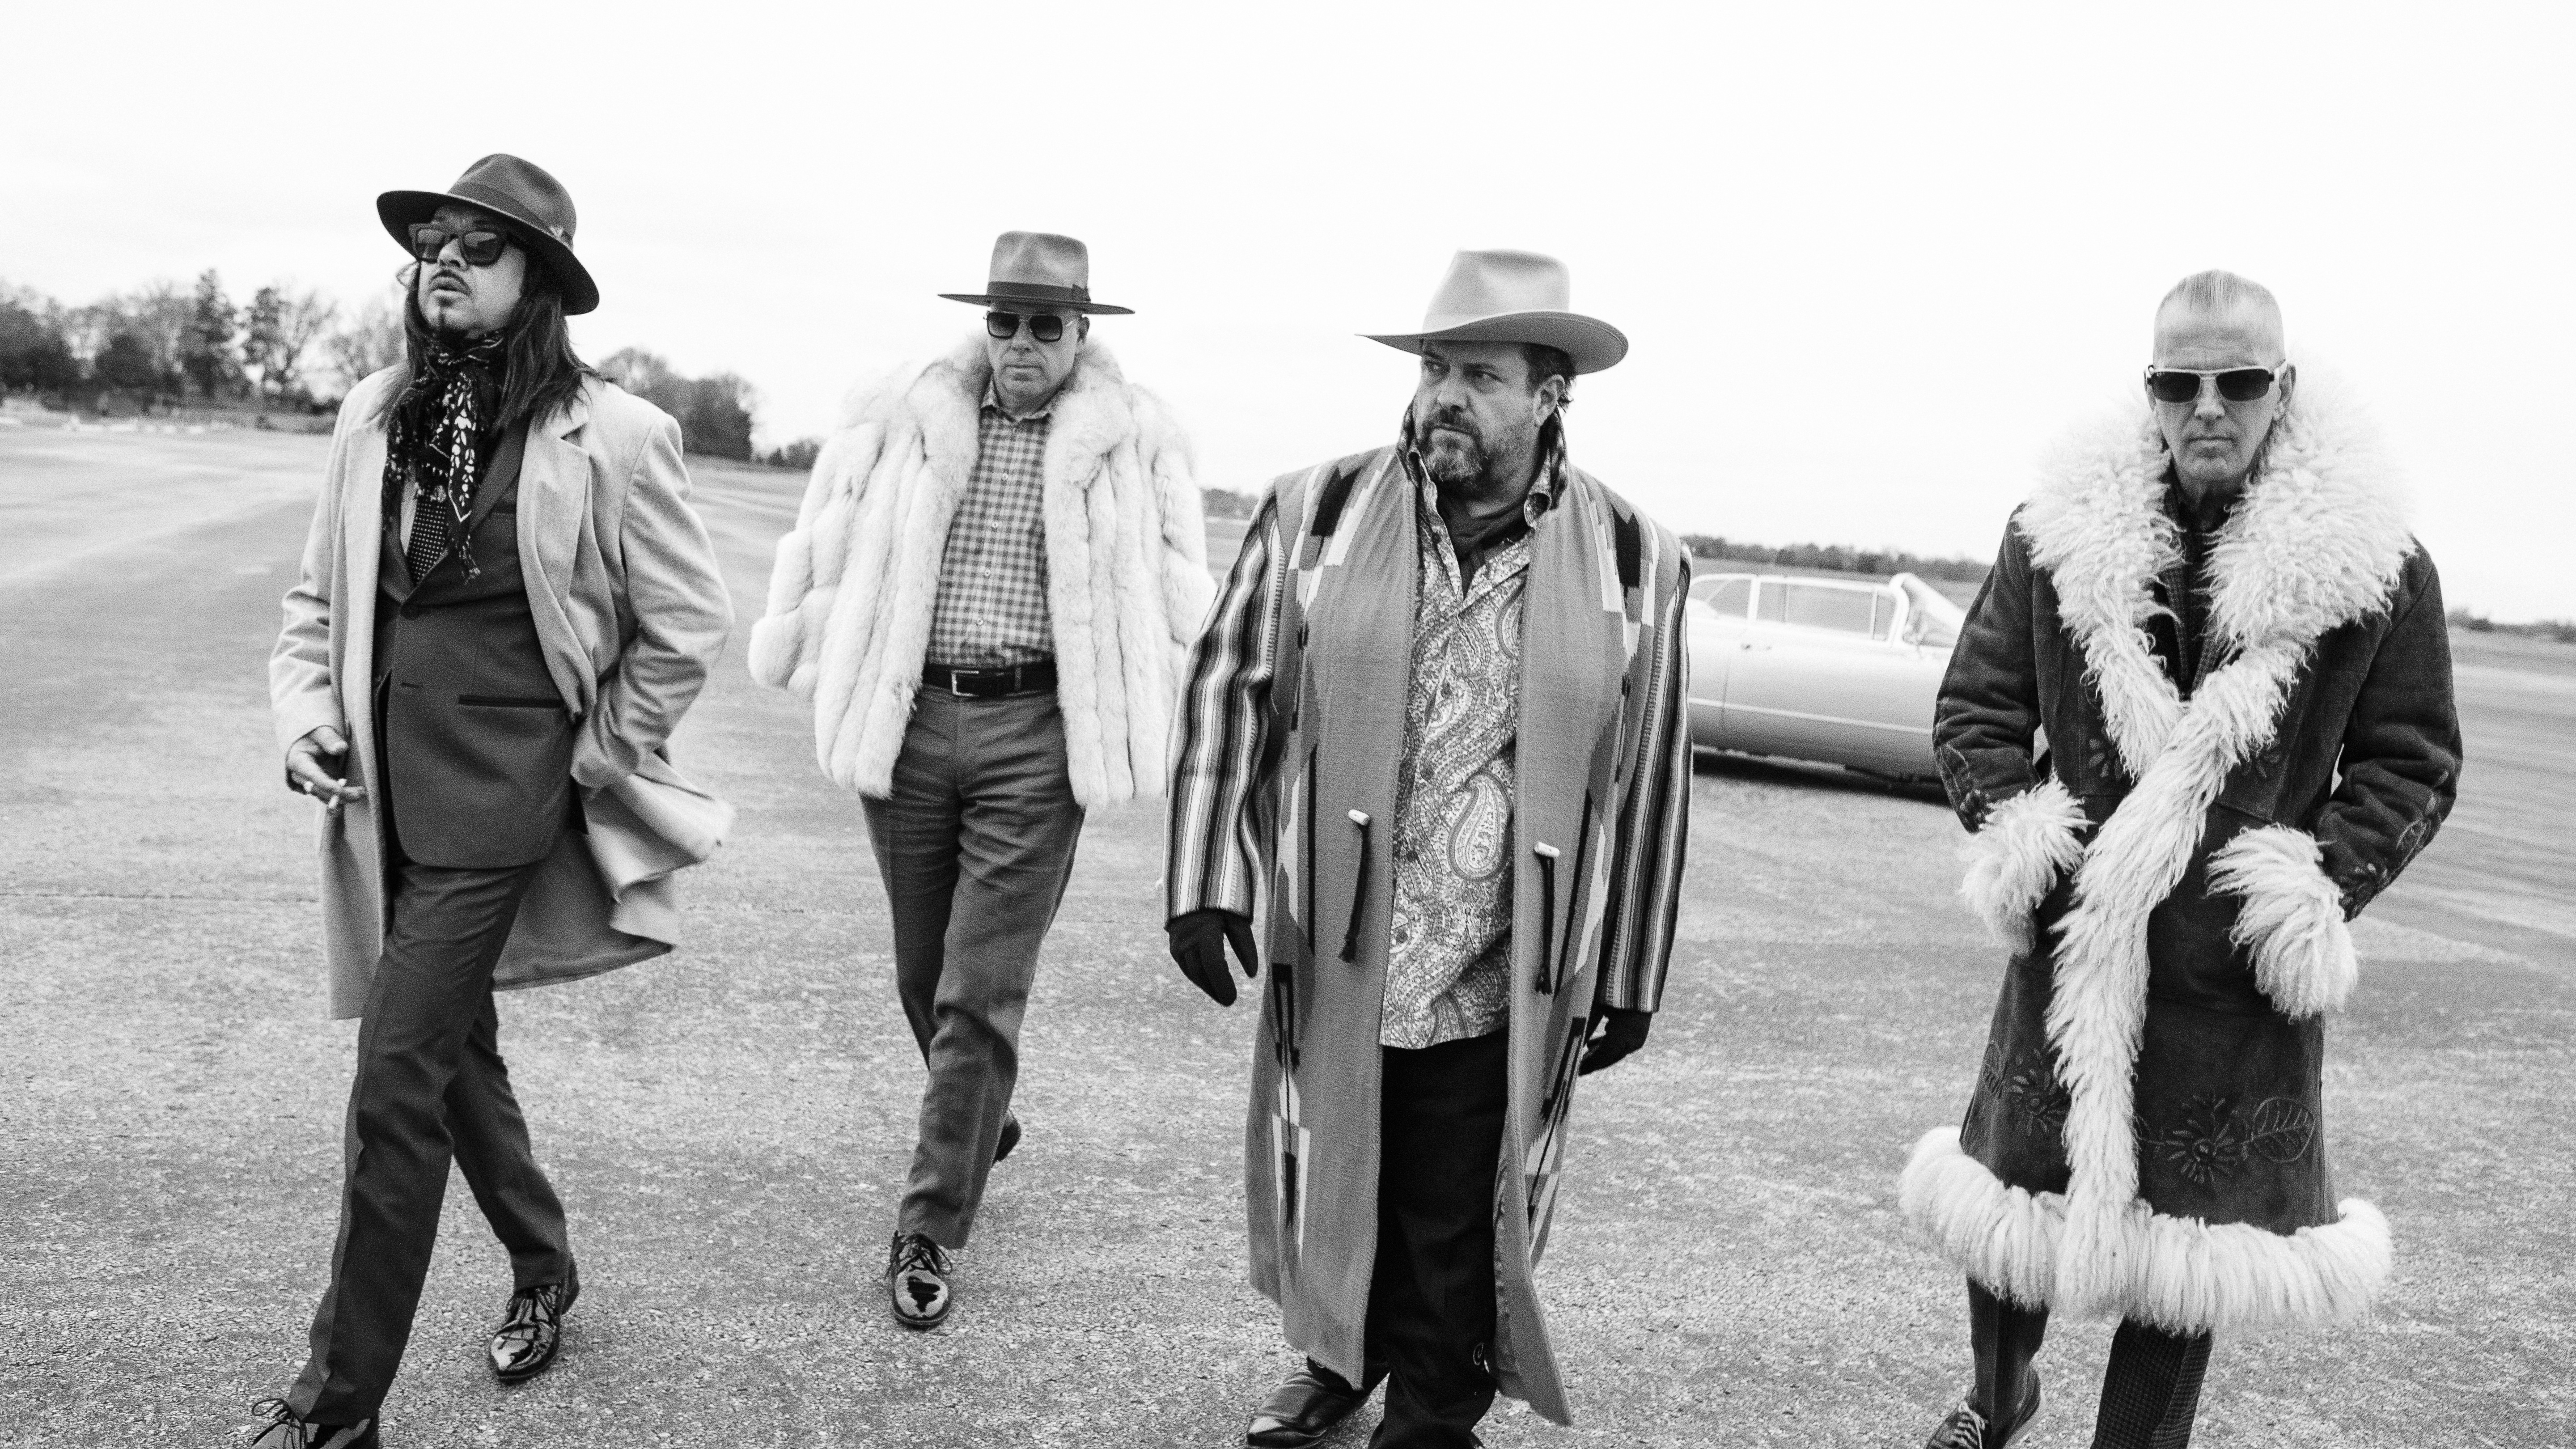 The Mavericks to perform at SugarHouse Casino on Saturday, June 10, 2017 at 9 p.m. (Photo: Business Wire)